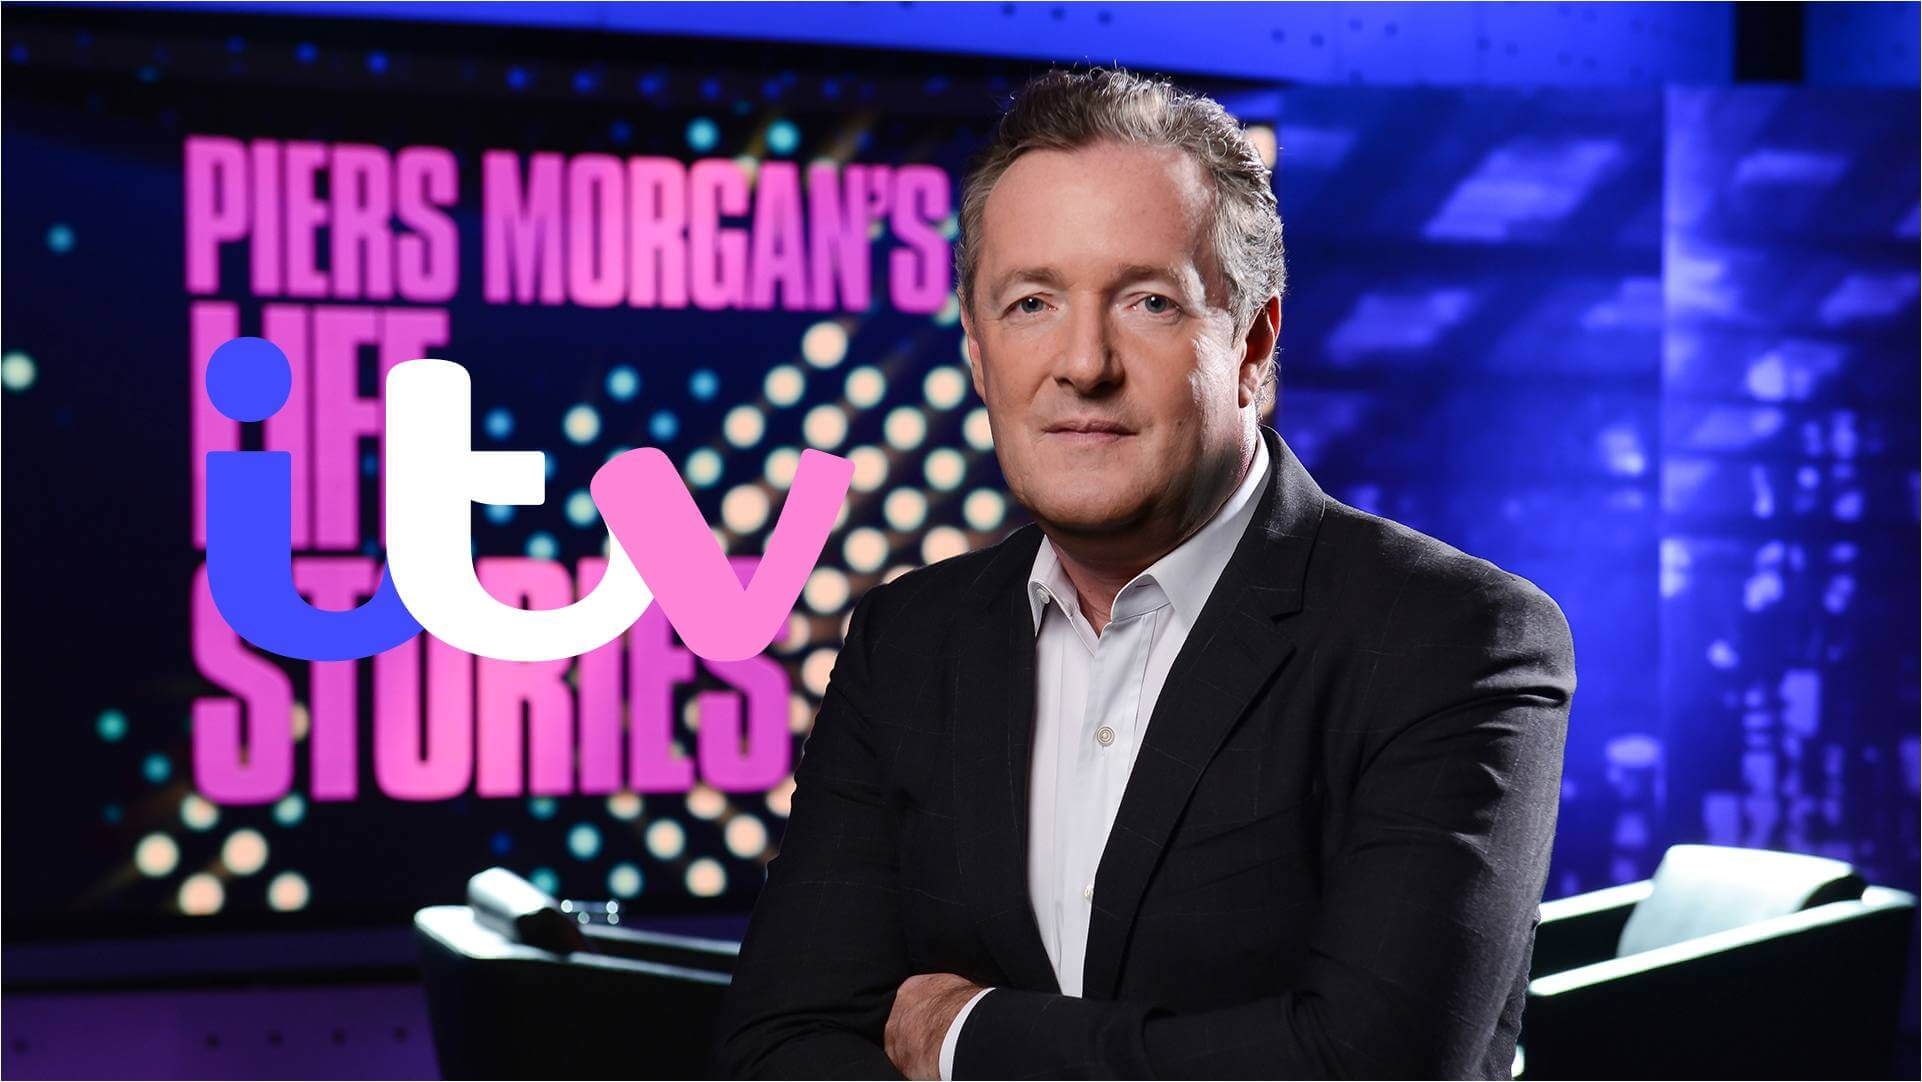 icelolly.com to sponsor Piers Morgan's Life Stories